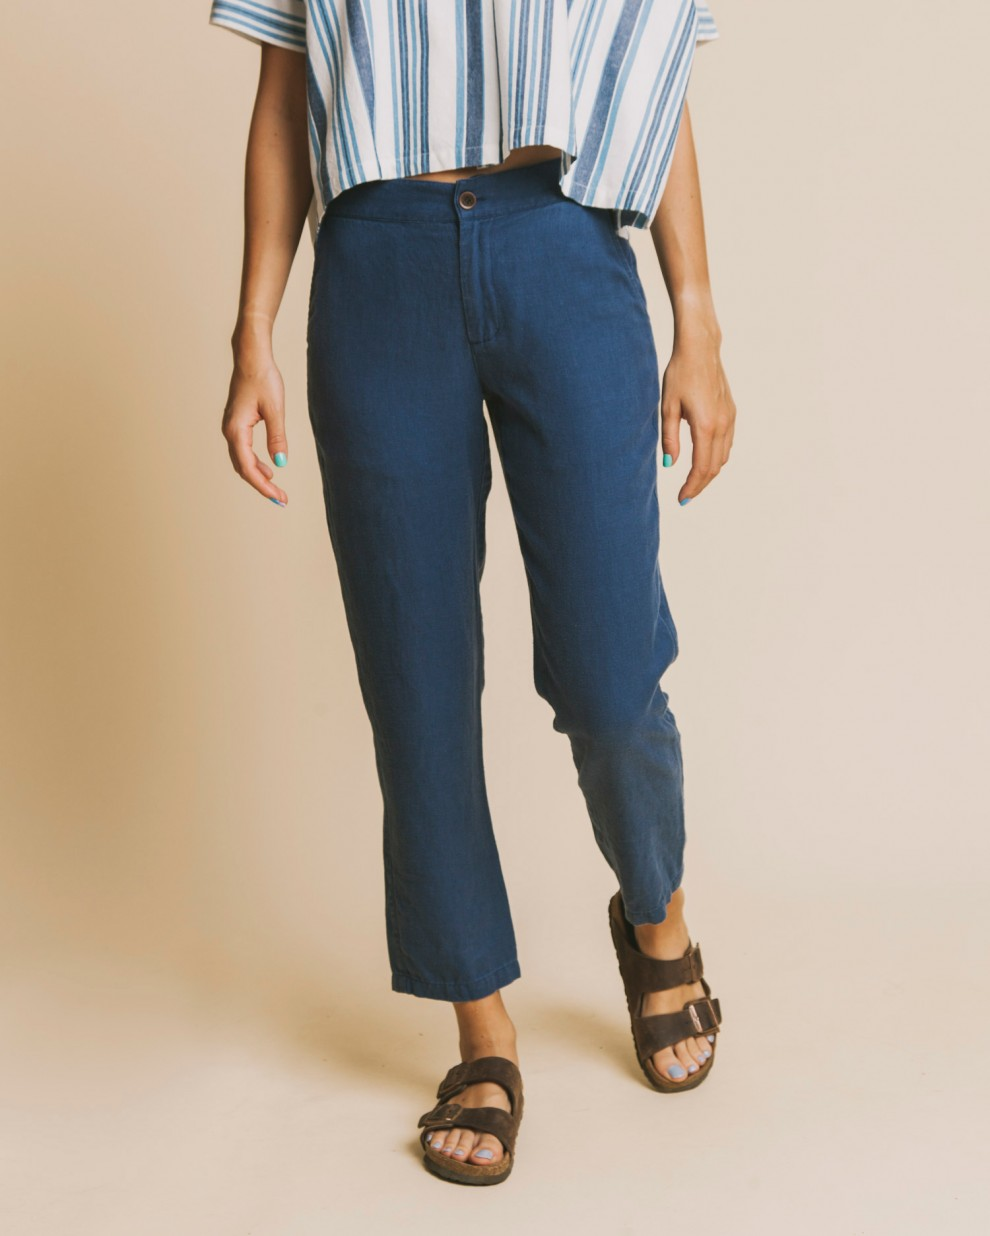 Blue hemp Dafne pant